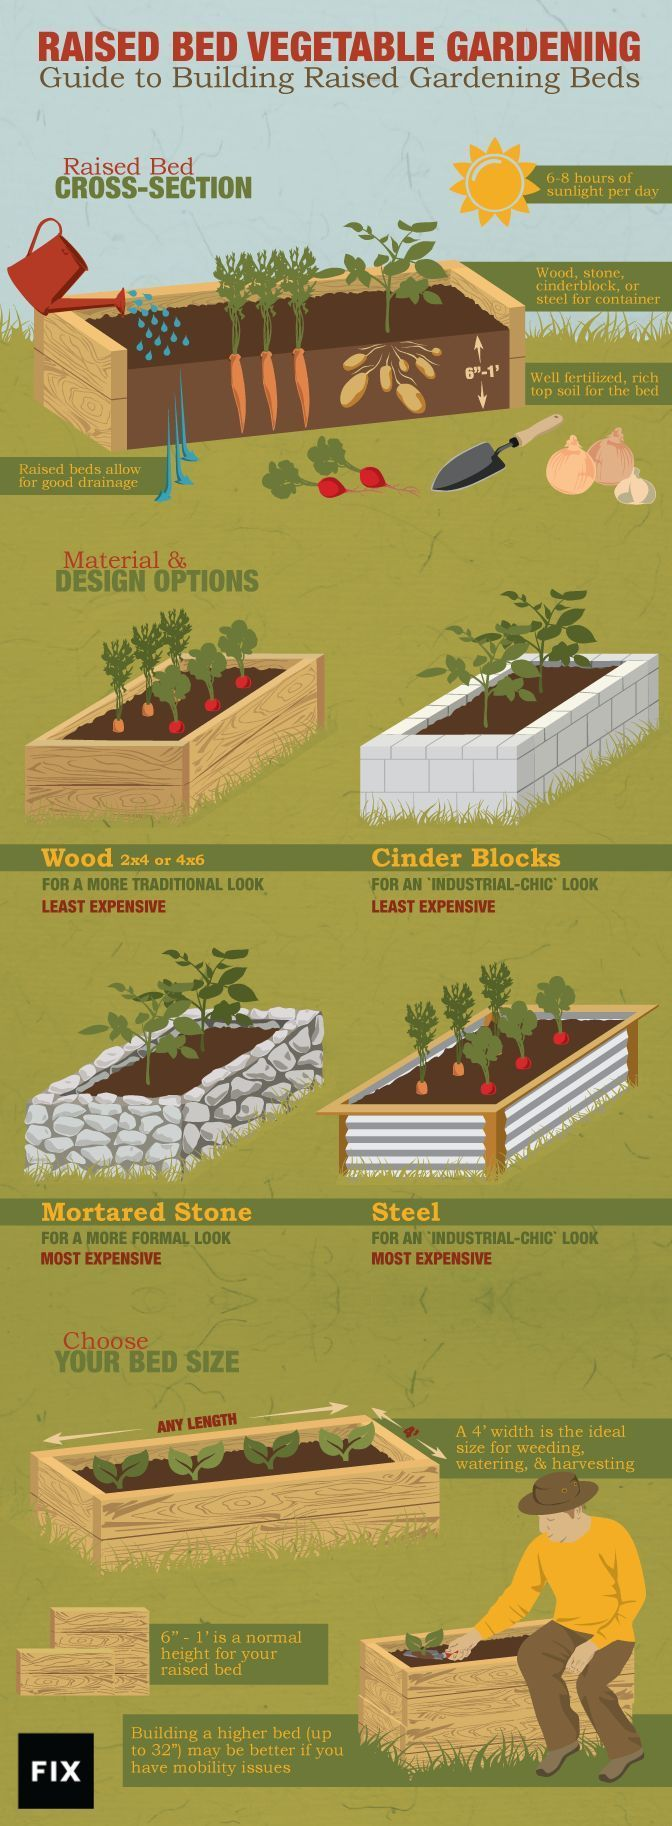 A guide to building raised gardening beds raising learning and